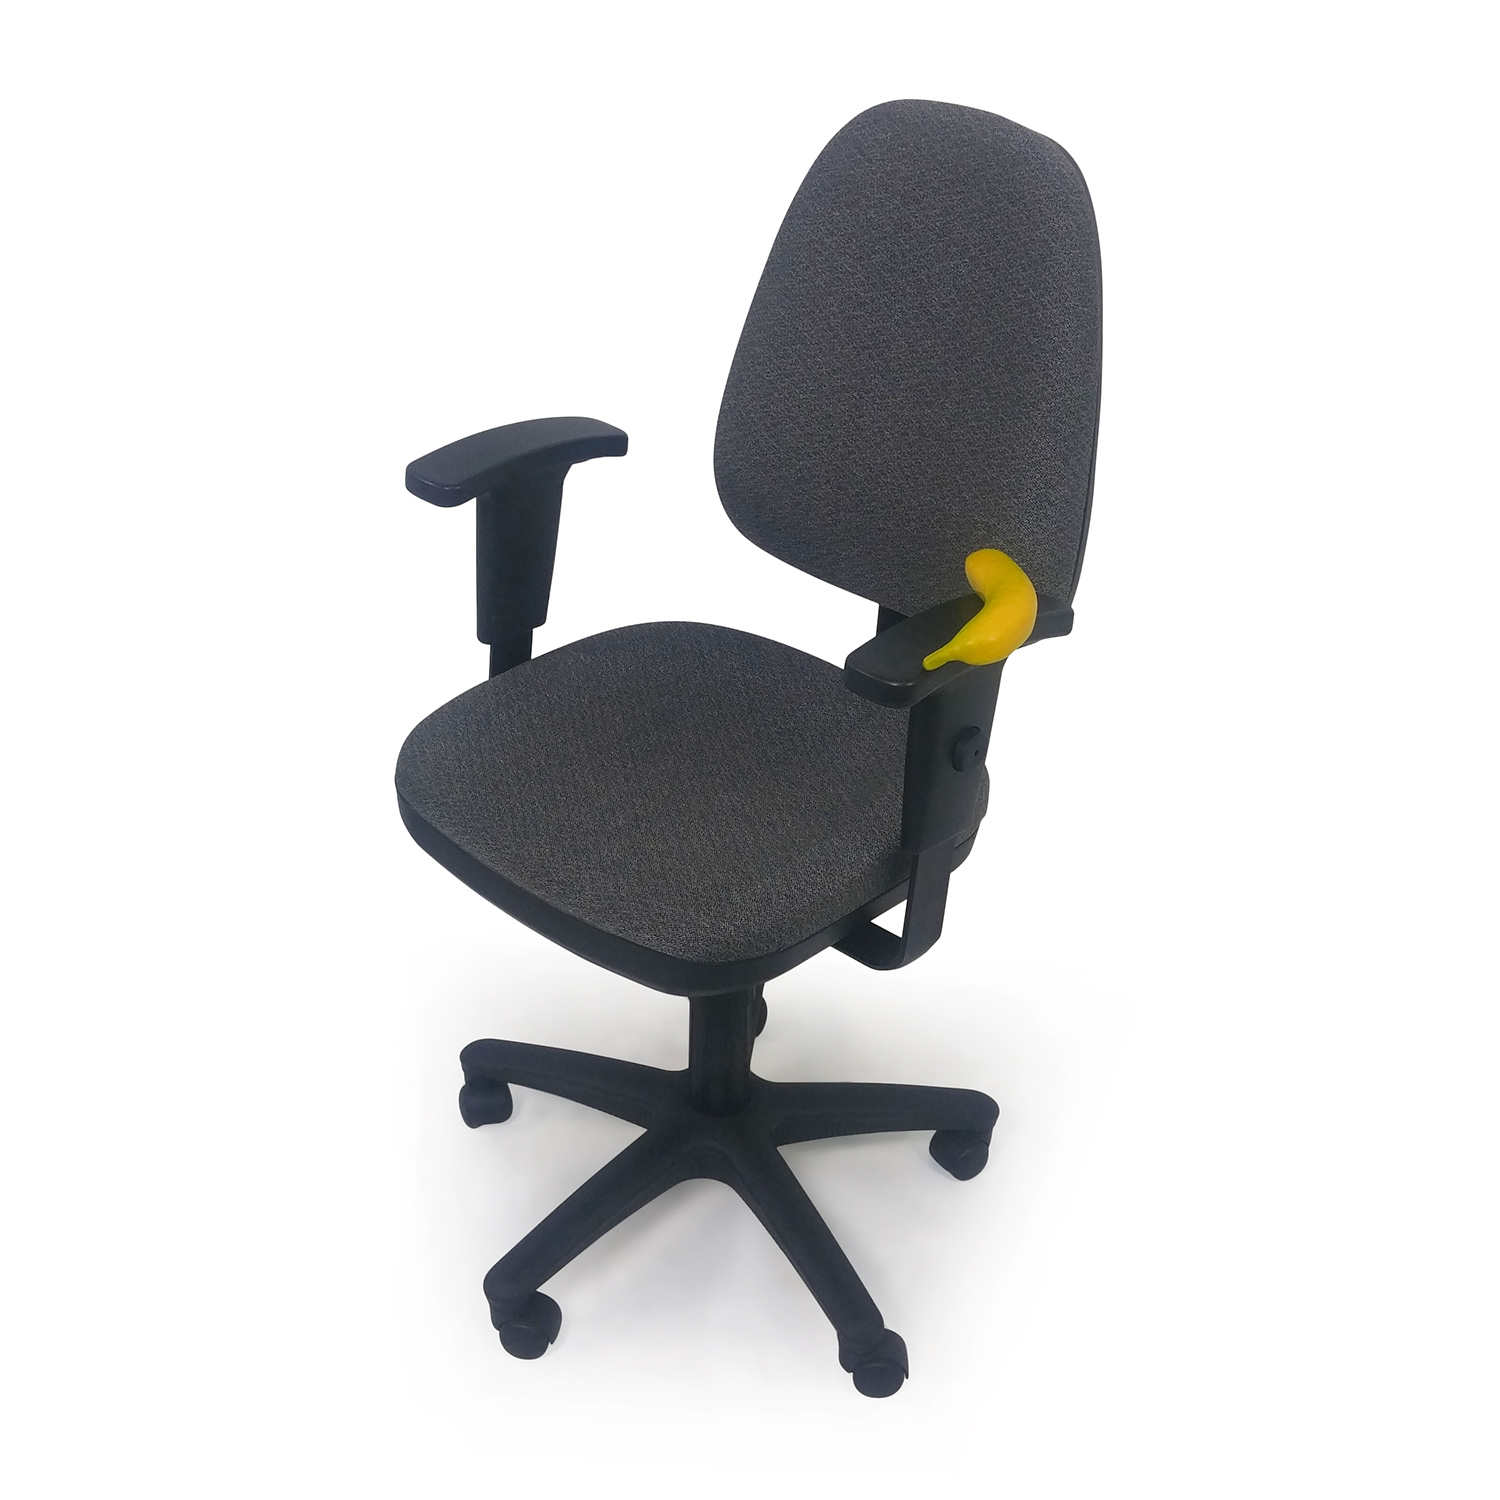 88 off ergonomic office chair chairs. Black Bedroom Furniture Sets. Home Design Ideas